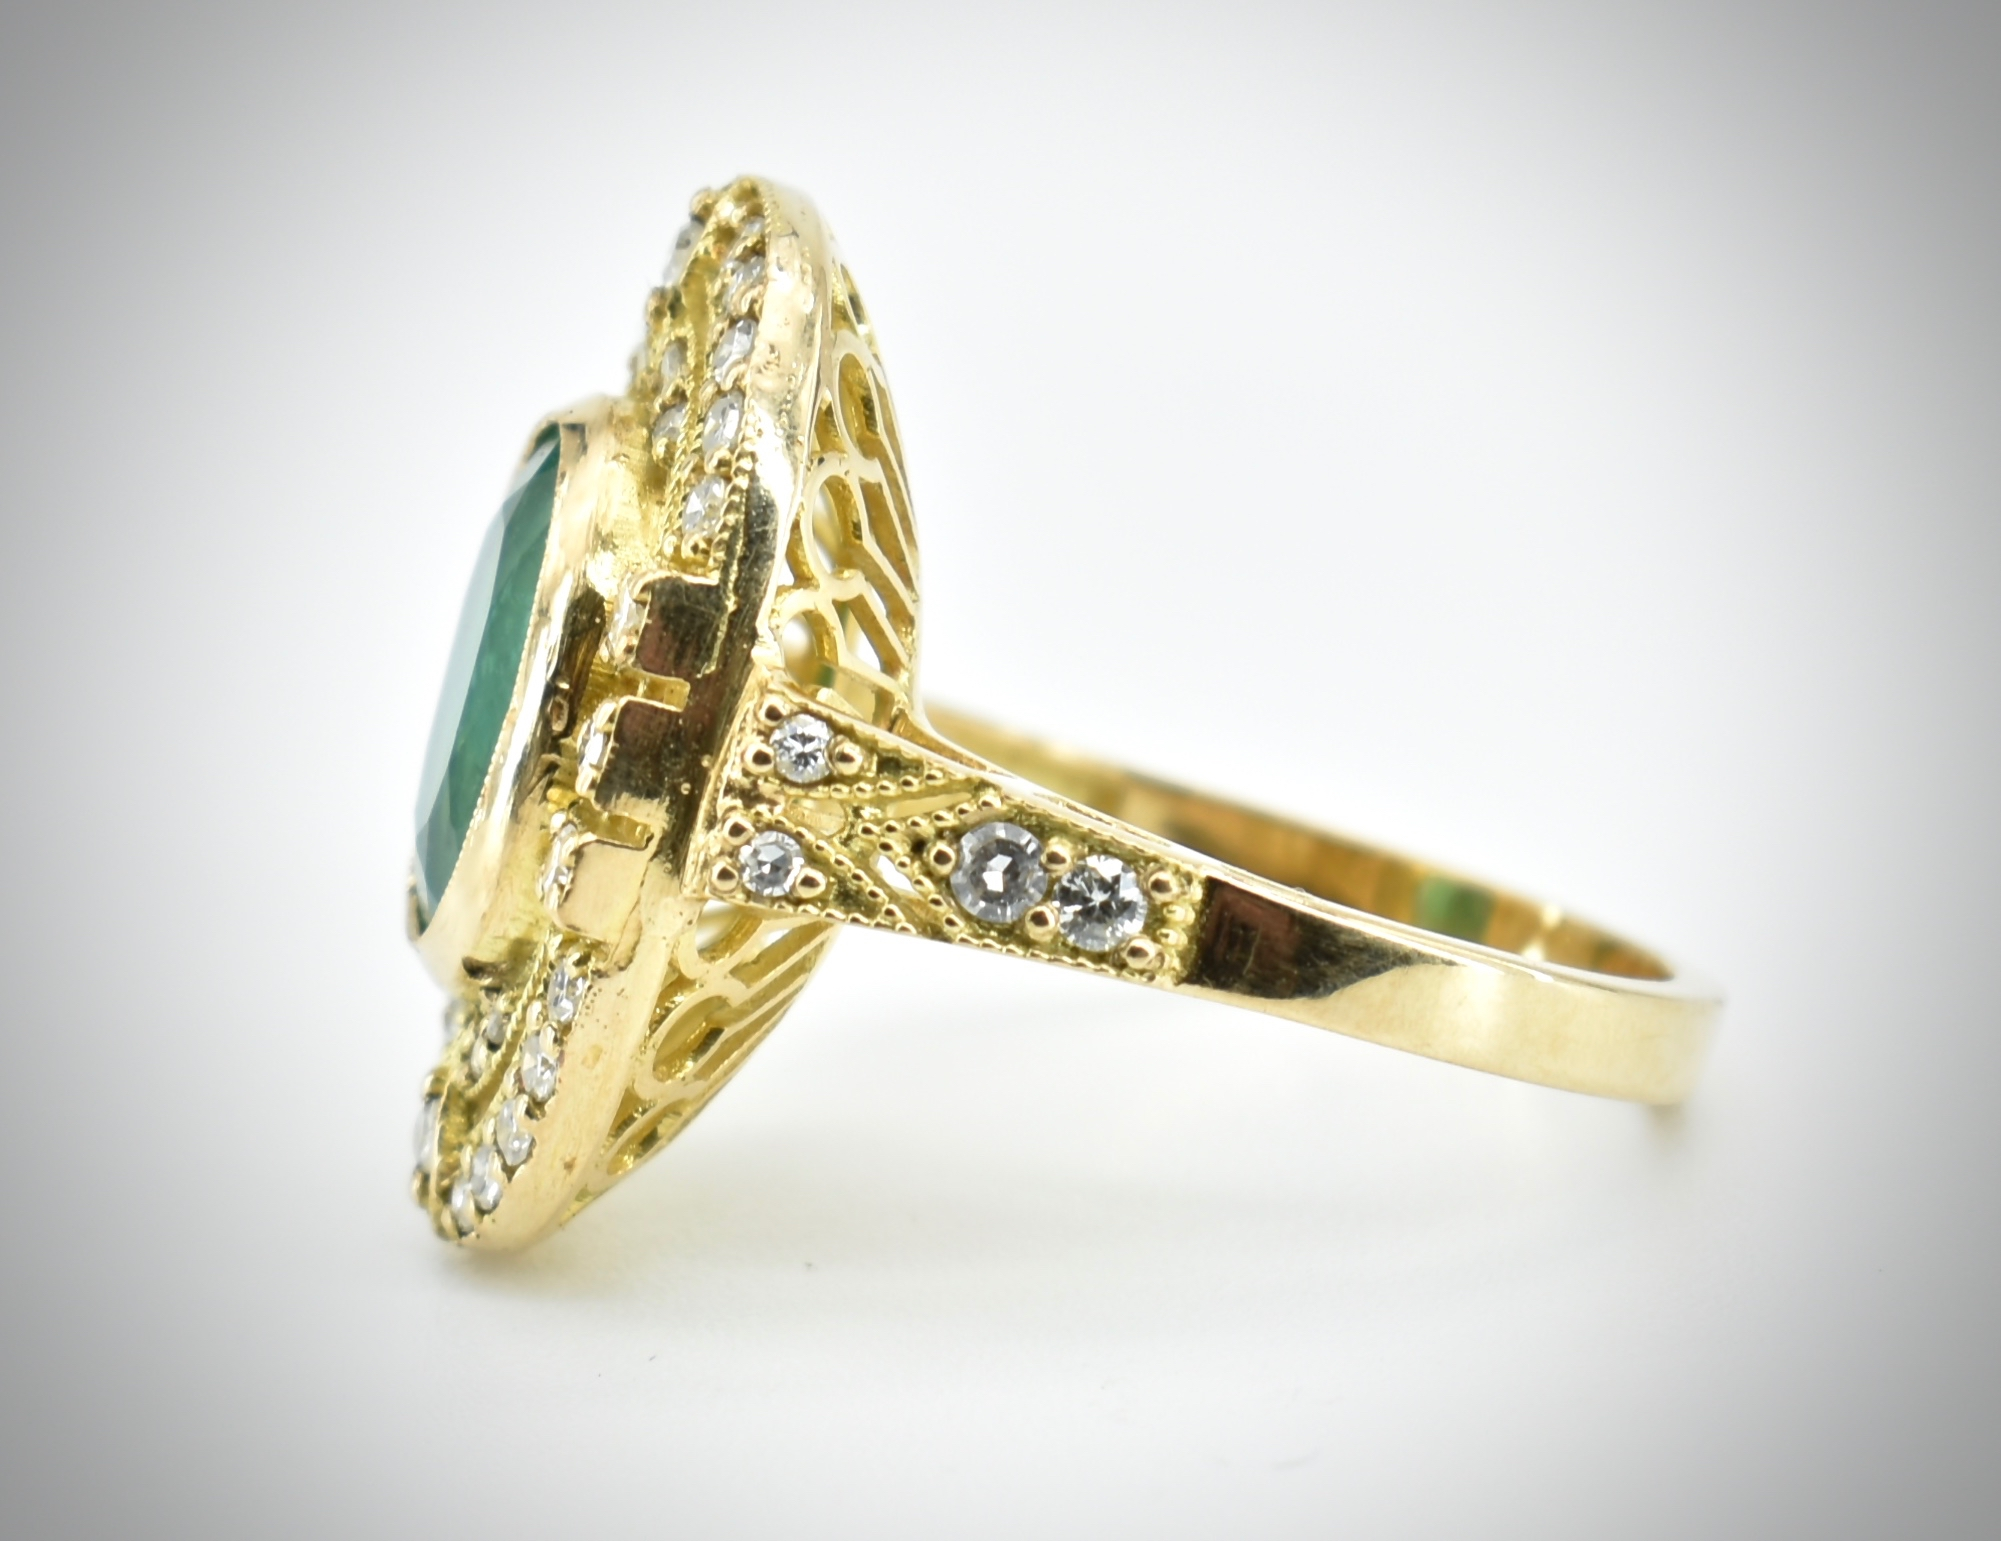 AN 18CT GOLD EMERALD & DIAMOND RING - Image 5 of 5